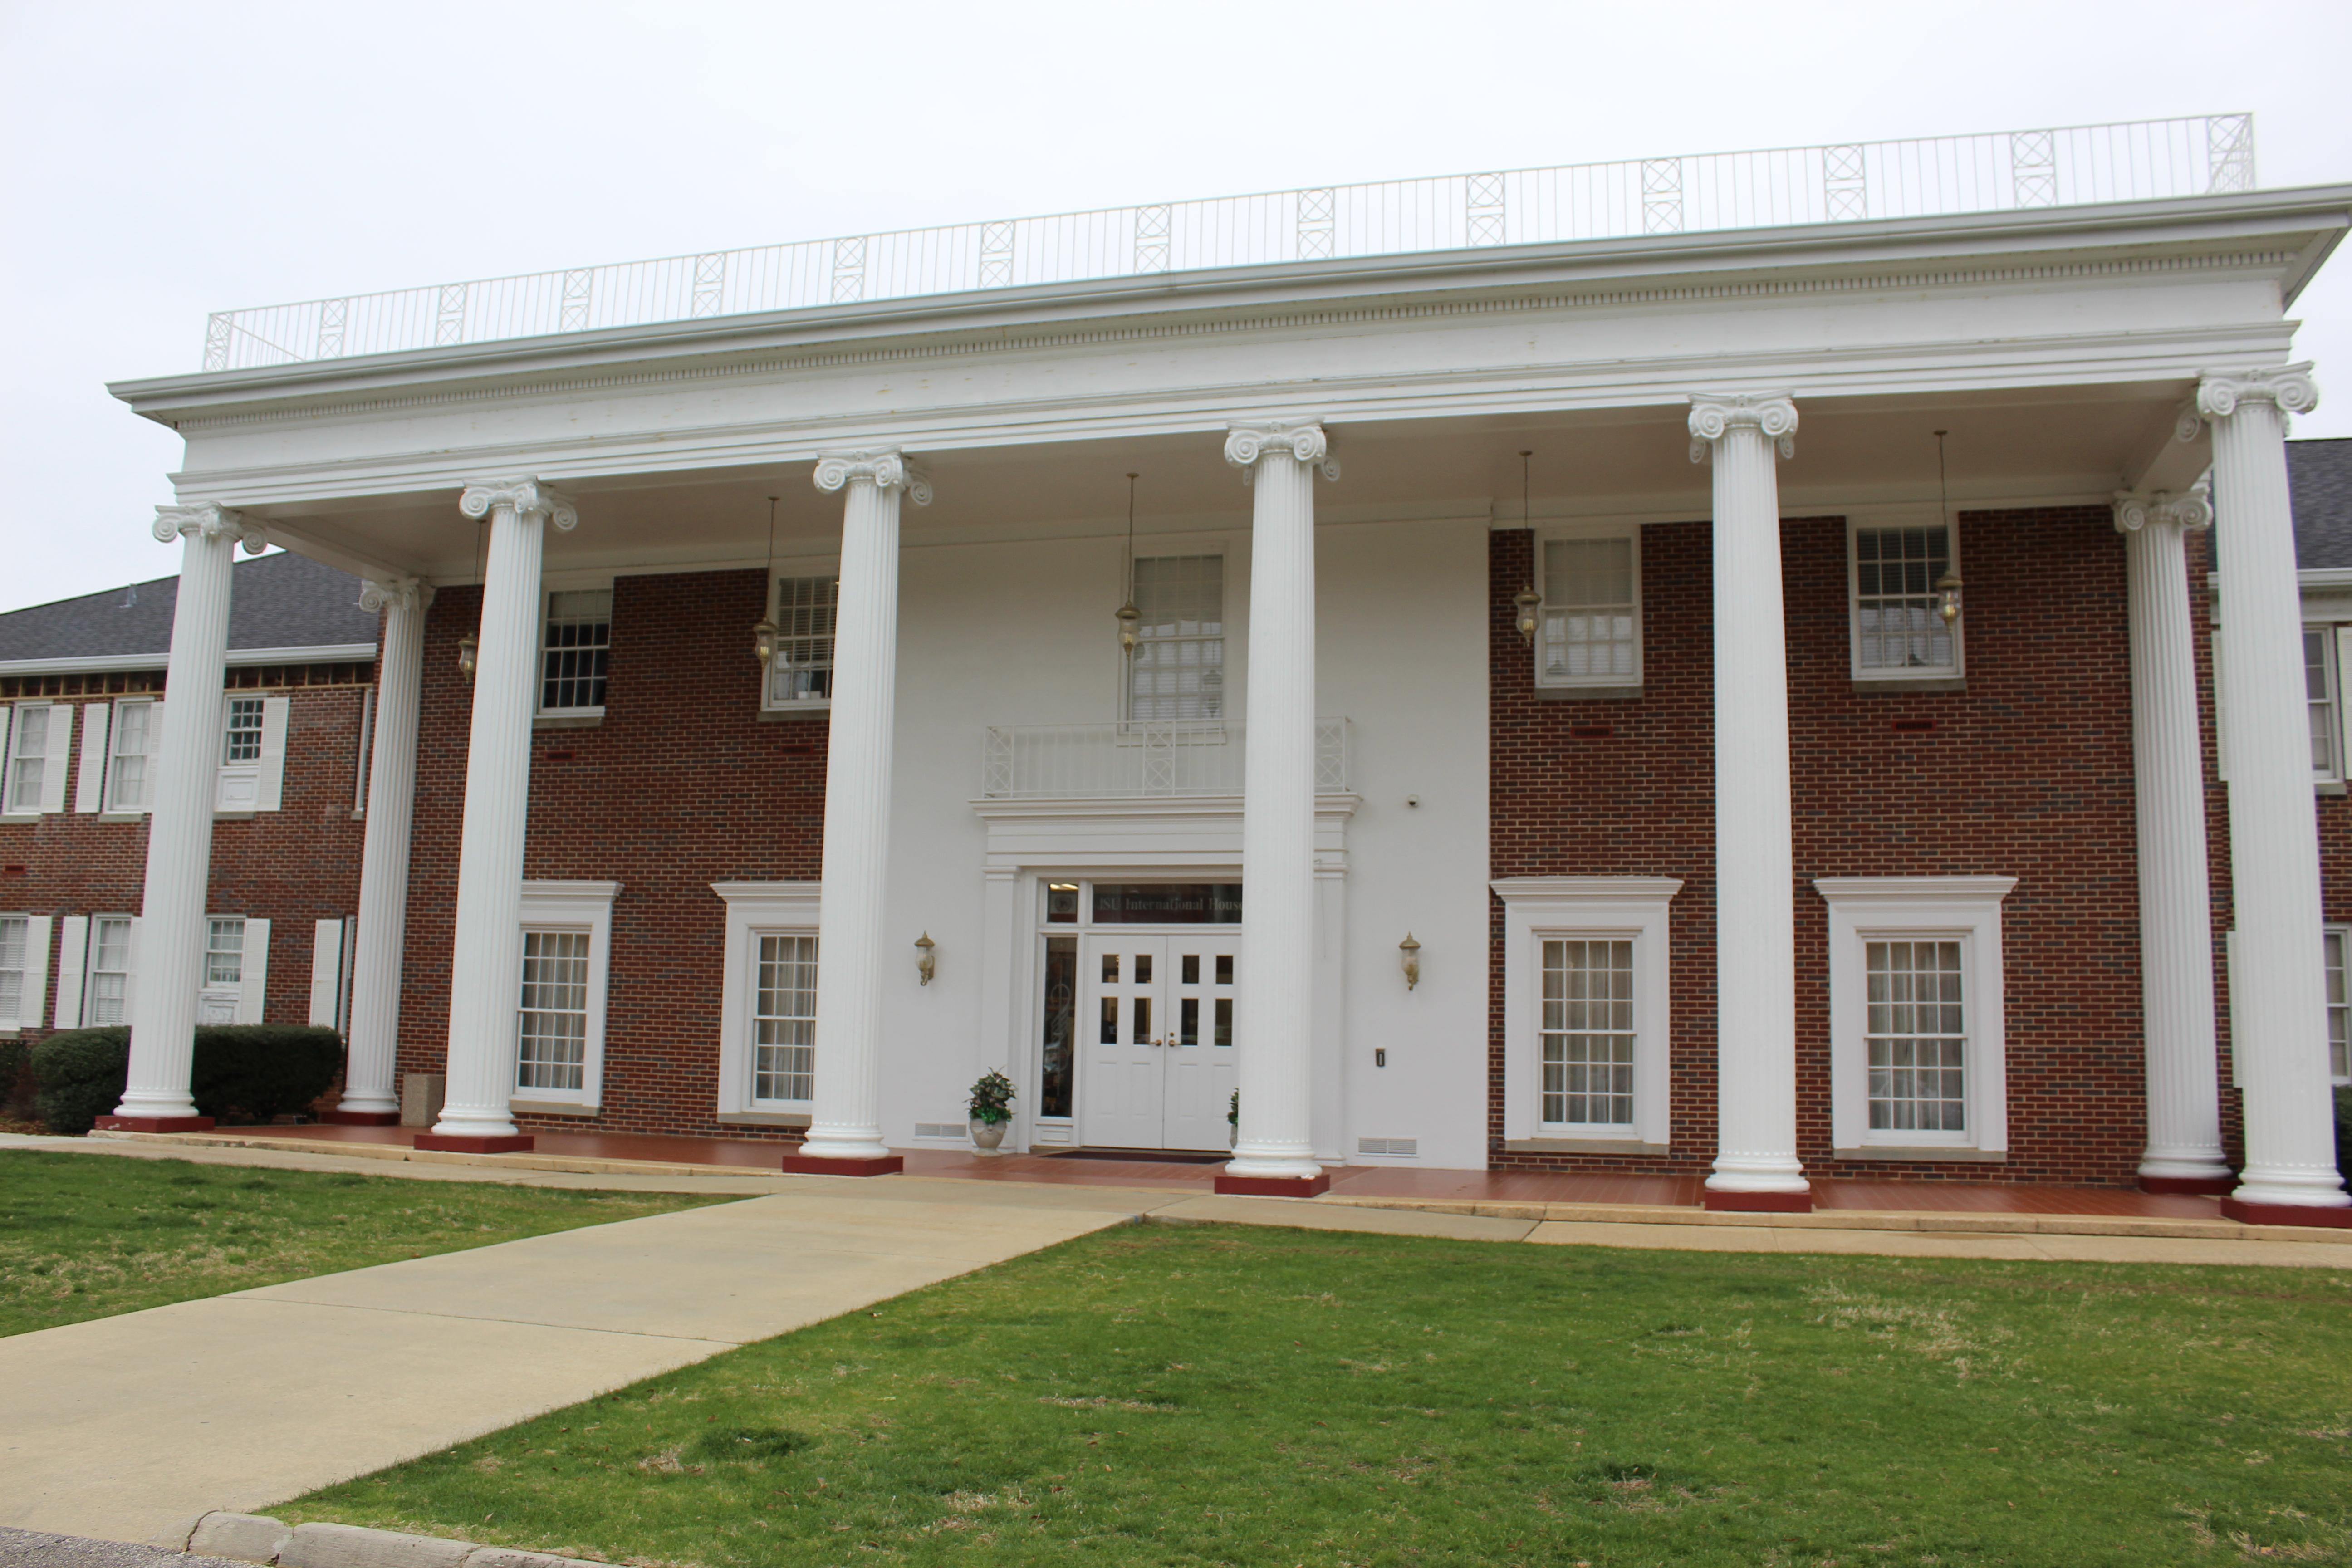 The International House, pictured, started in 1946 and currently house 40 students. (Scott Young/The Chanticleer)